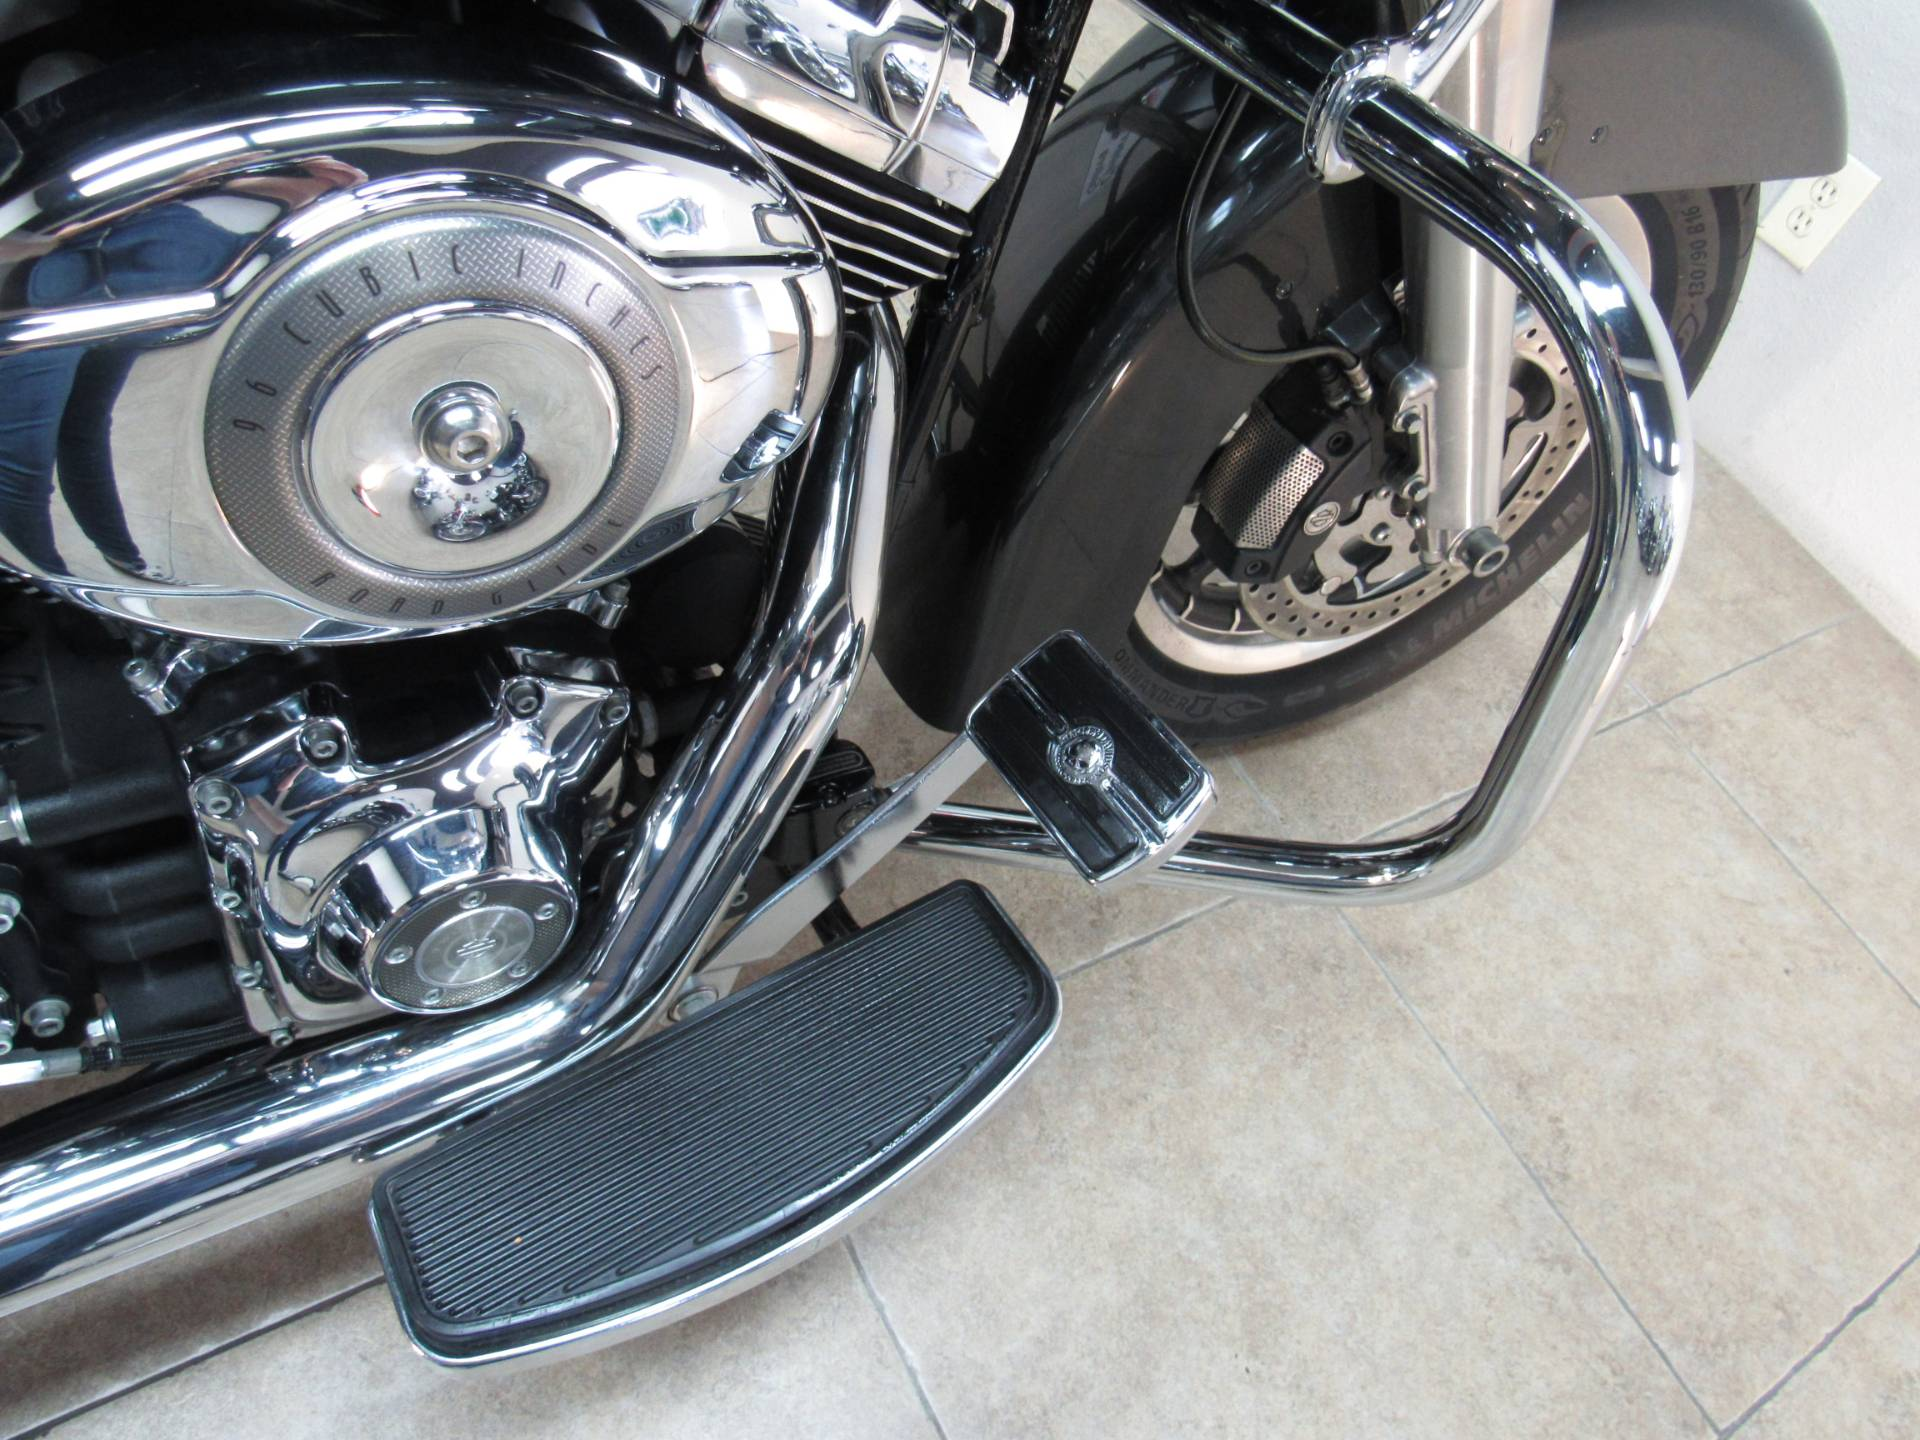 2008 Harley-Davidson Road Glide® in Temecula, California - Photo 10